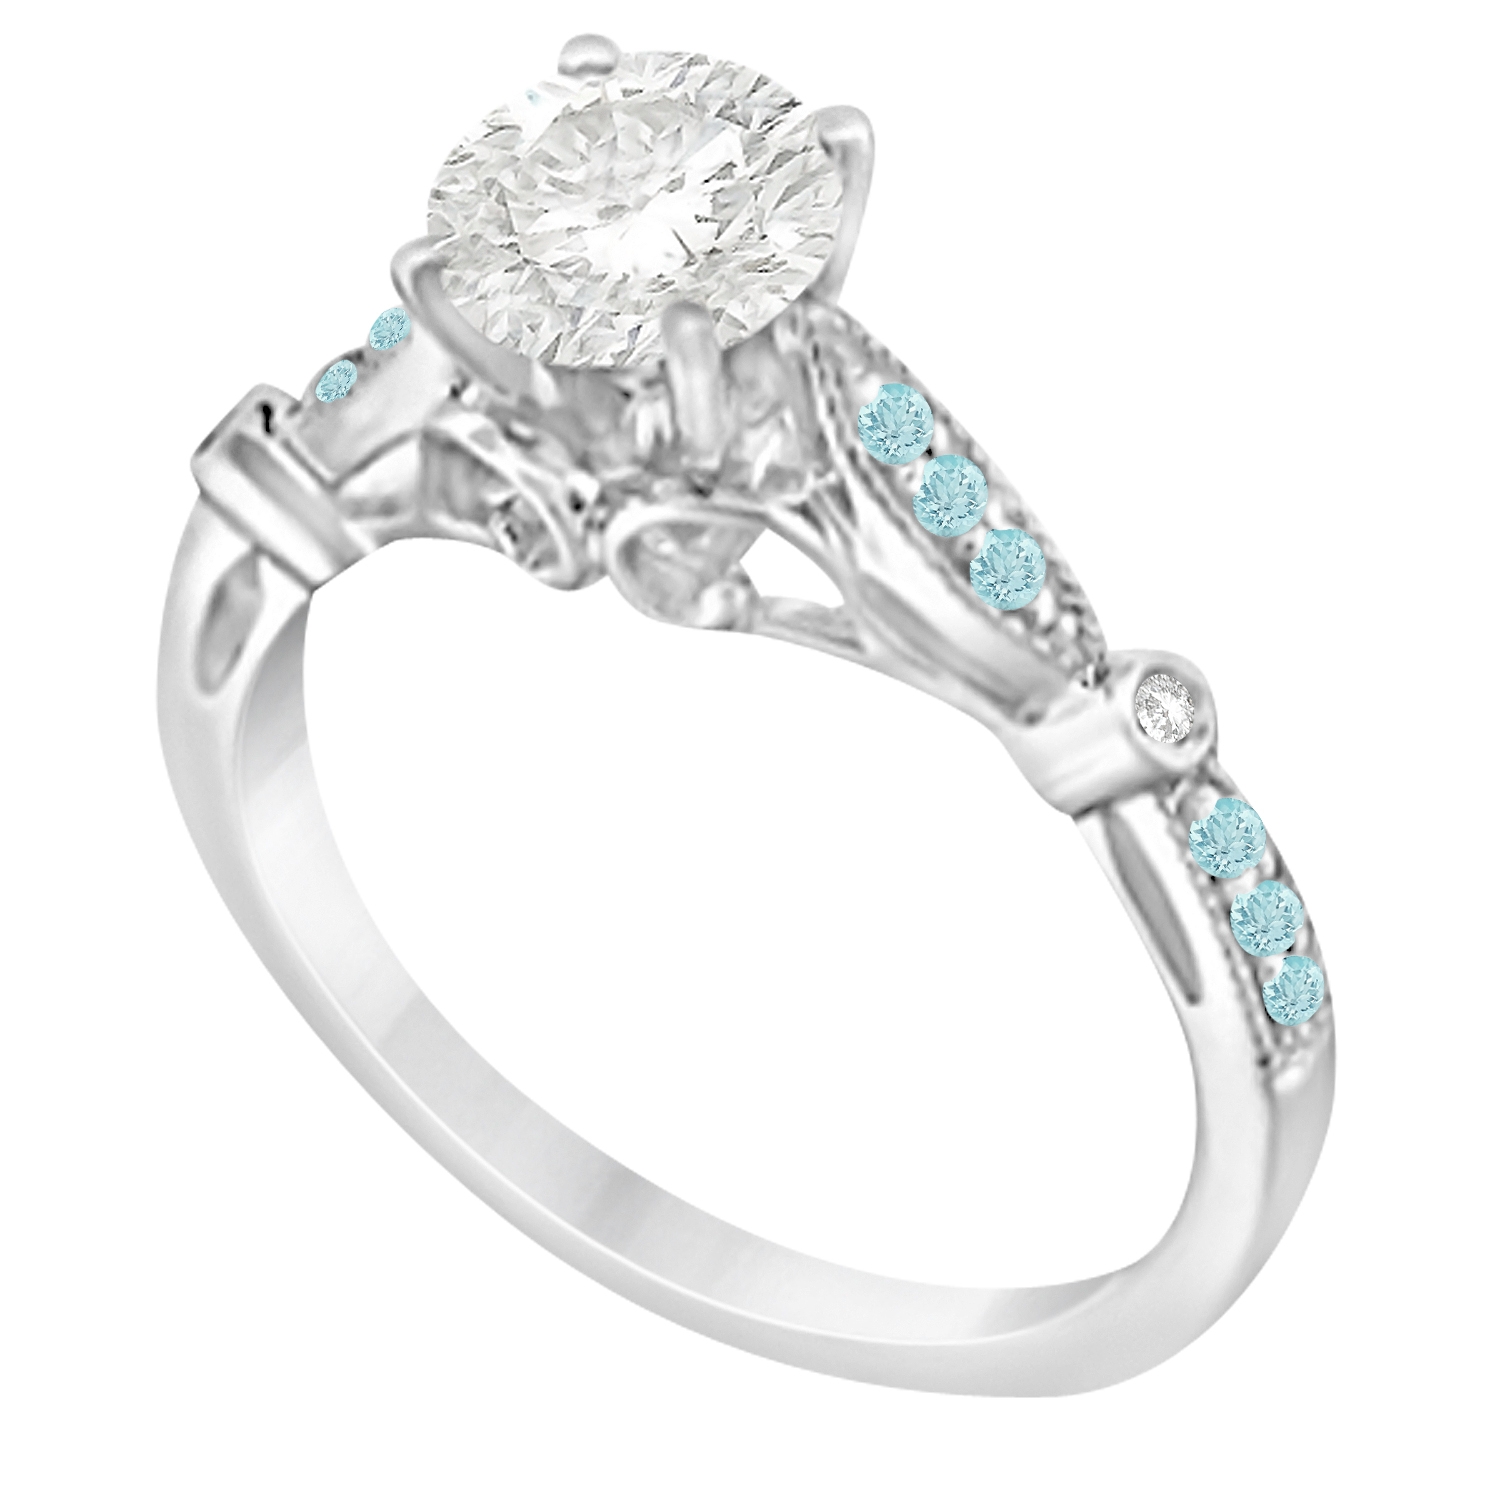 Marquise & Dot Aquamarine Vintage Engagement Ring 14k White Gold 0.13ct